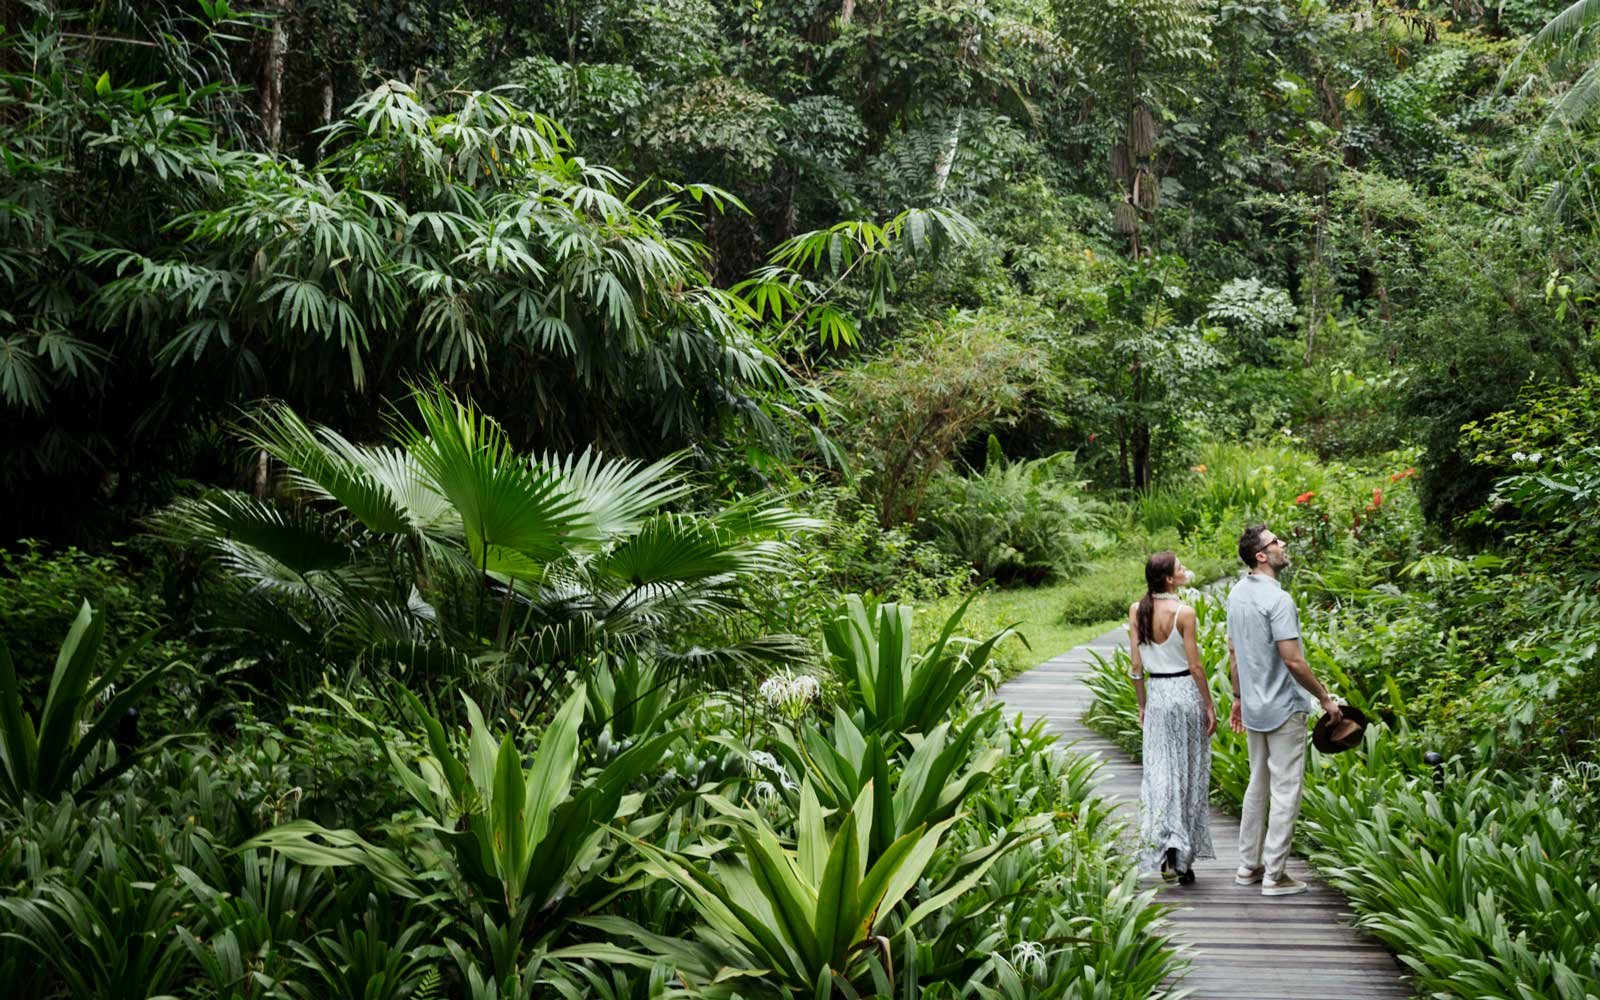 Butterfly walk at the Datai Langkawi hotel